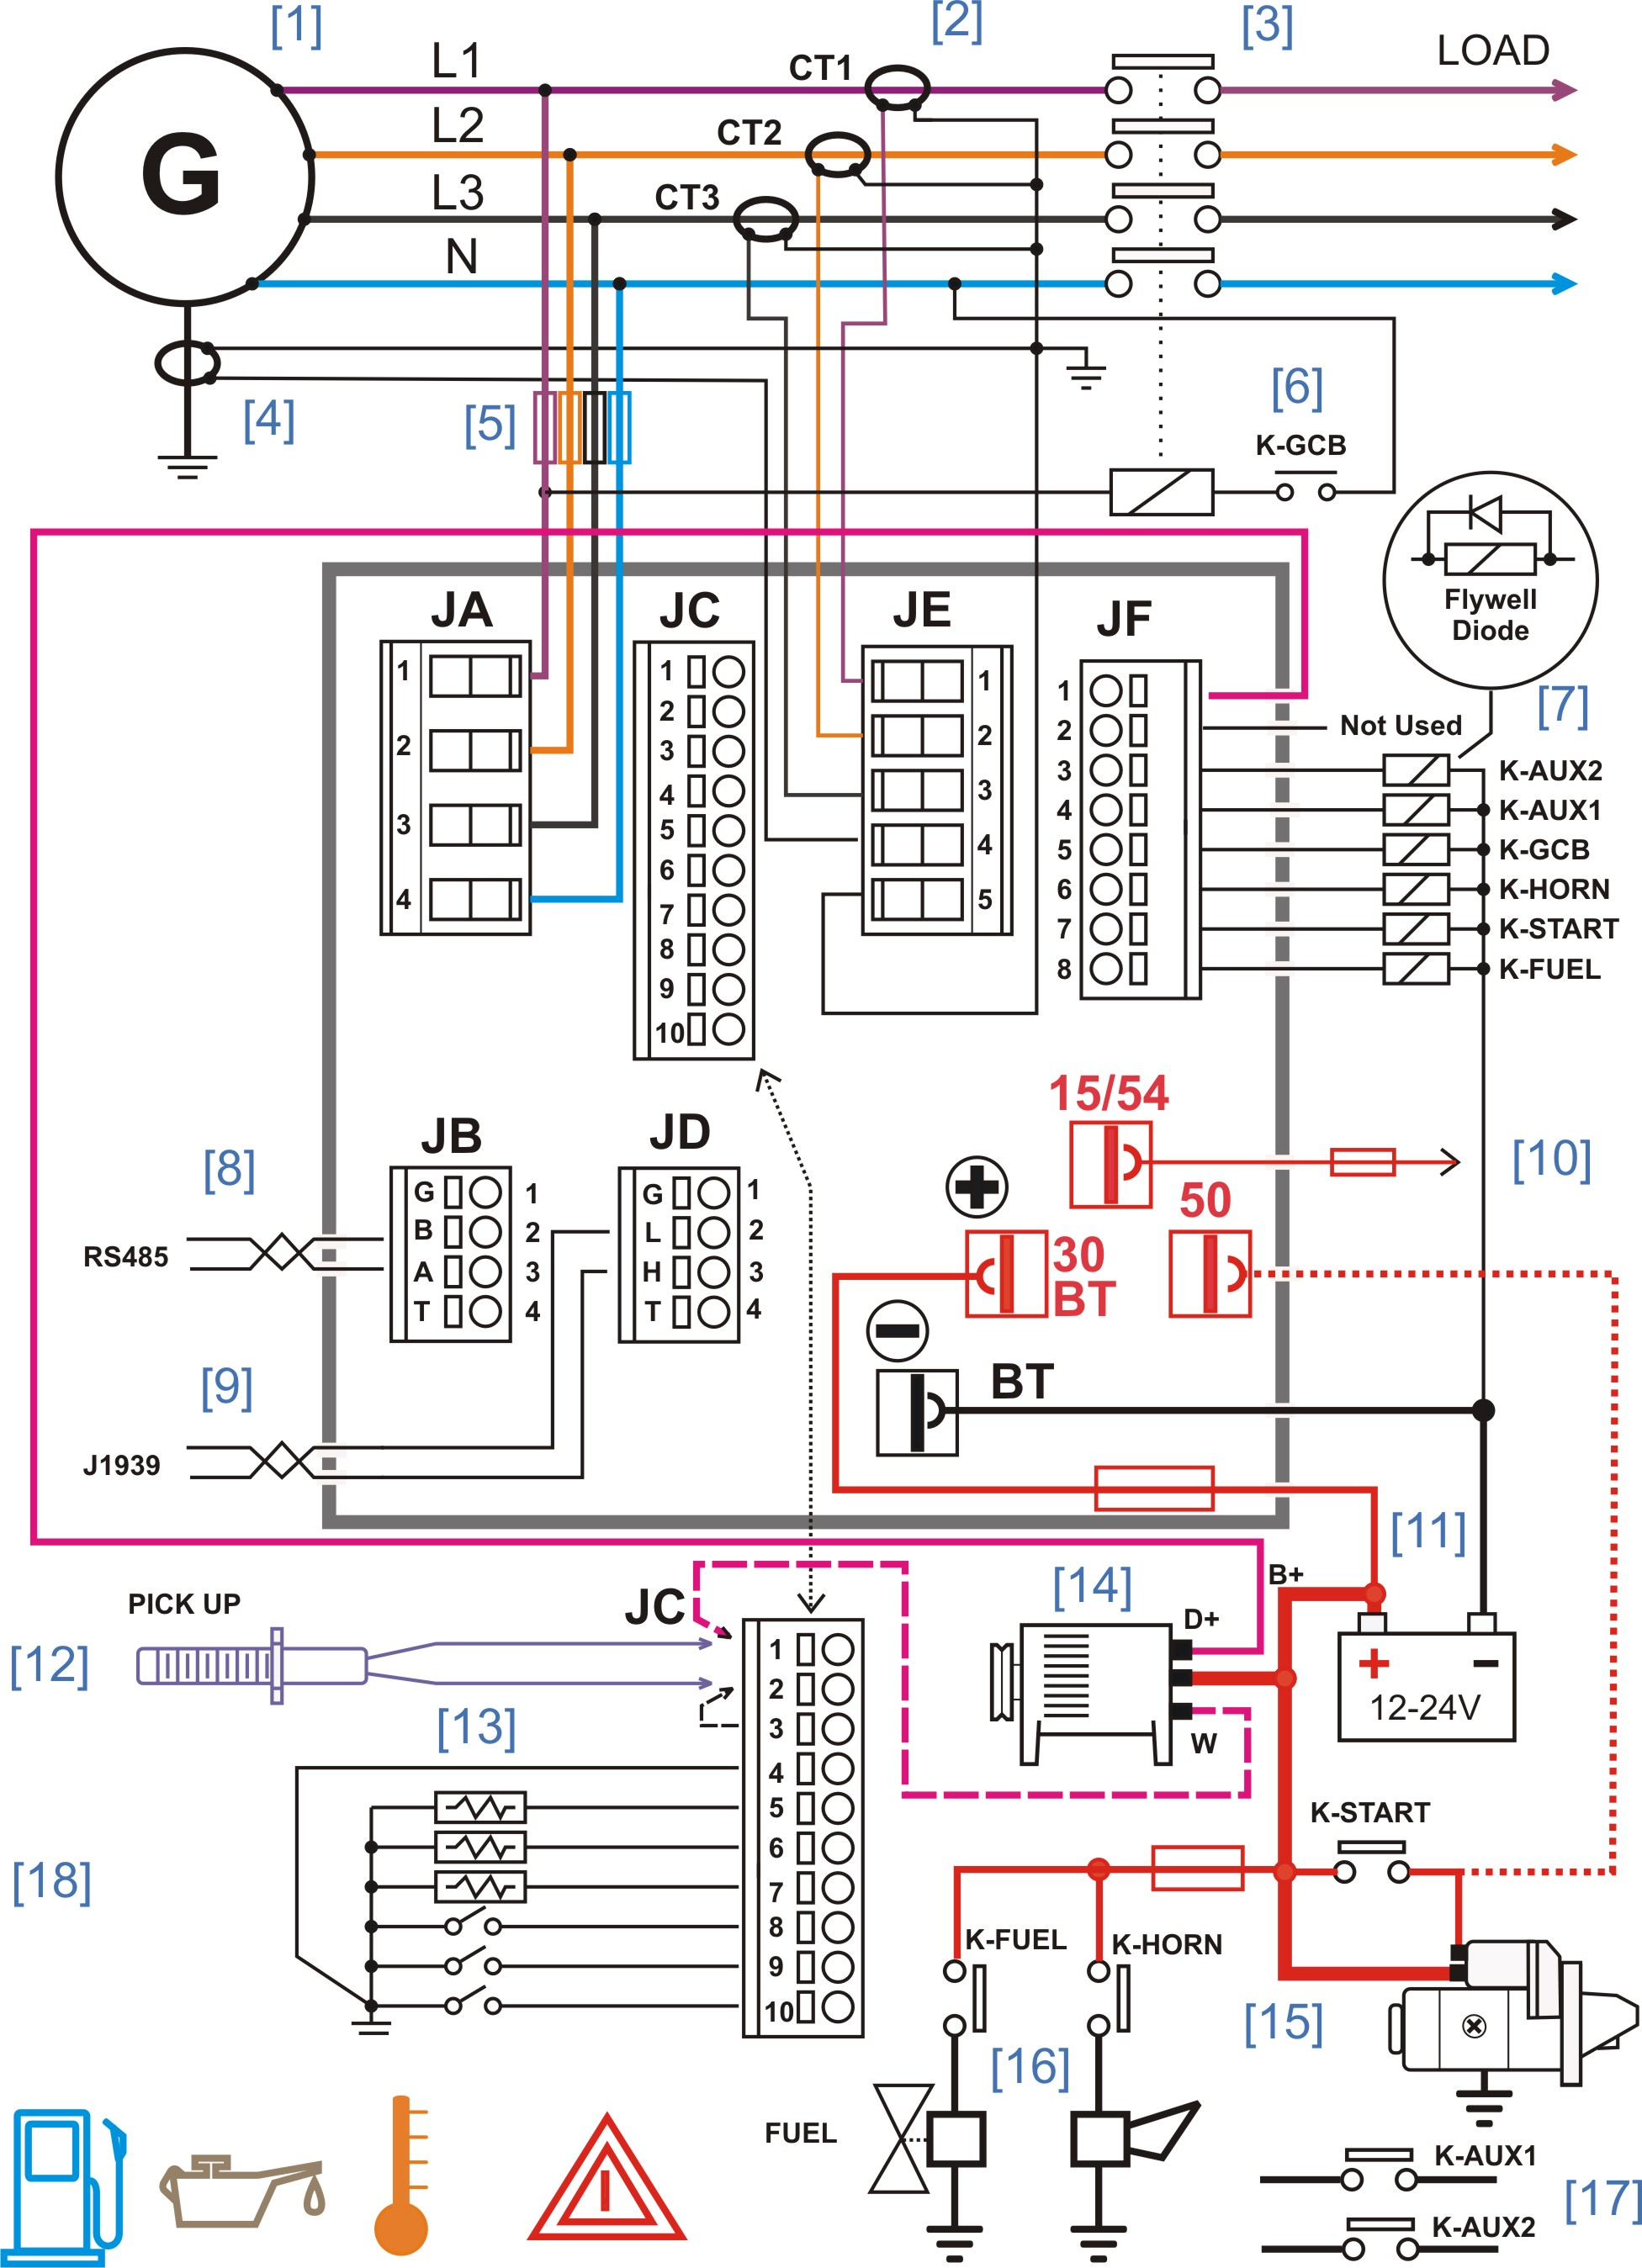 Diesel Generator Control Panel Wiring Diagram diesel generator control panel wiring diagram genset controller generator panel wiring diagram at bakdesigns.co